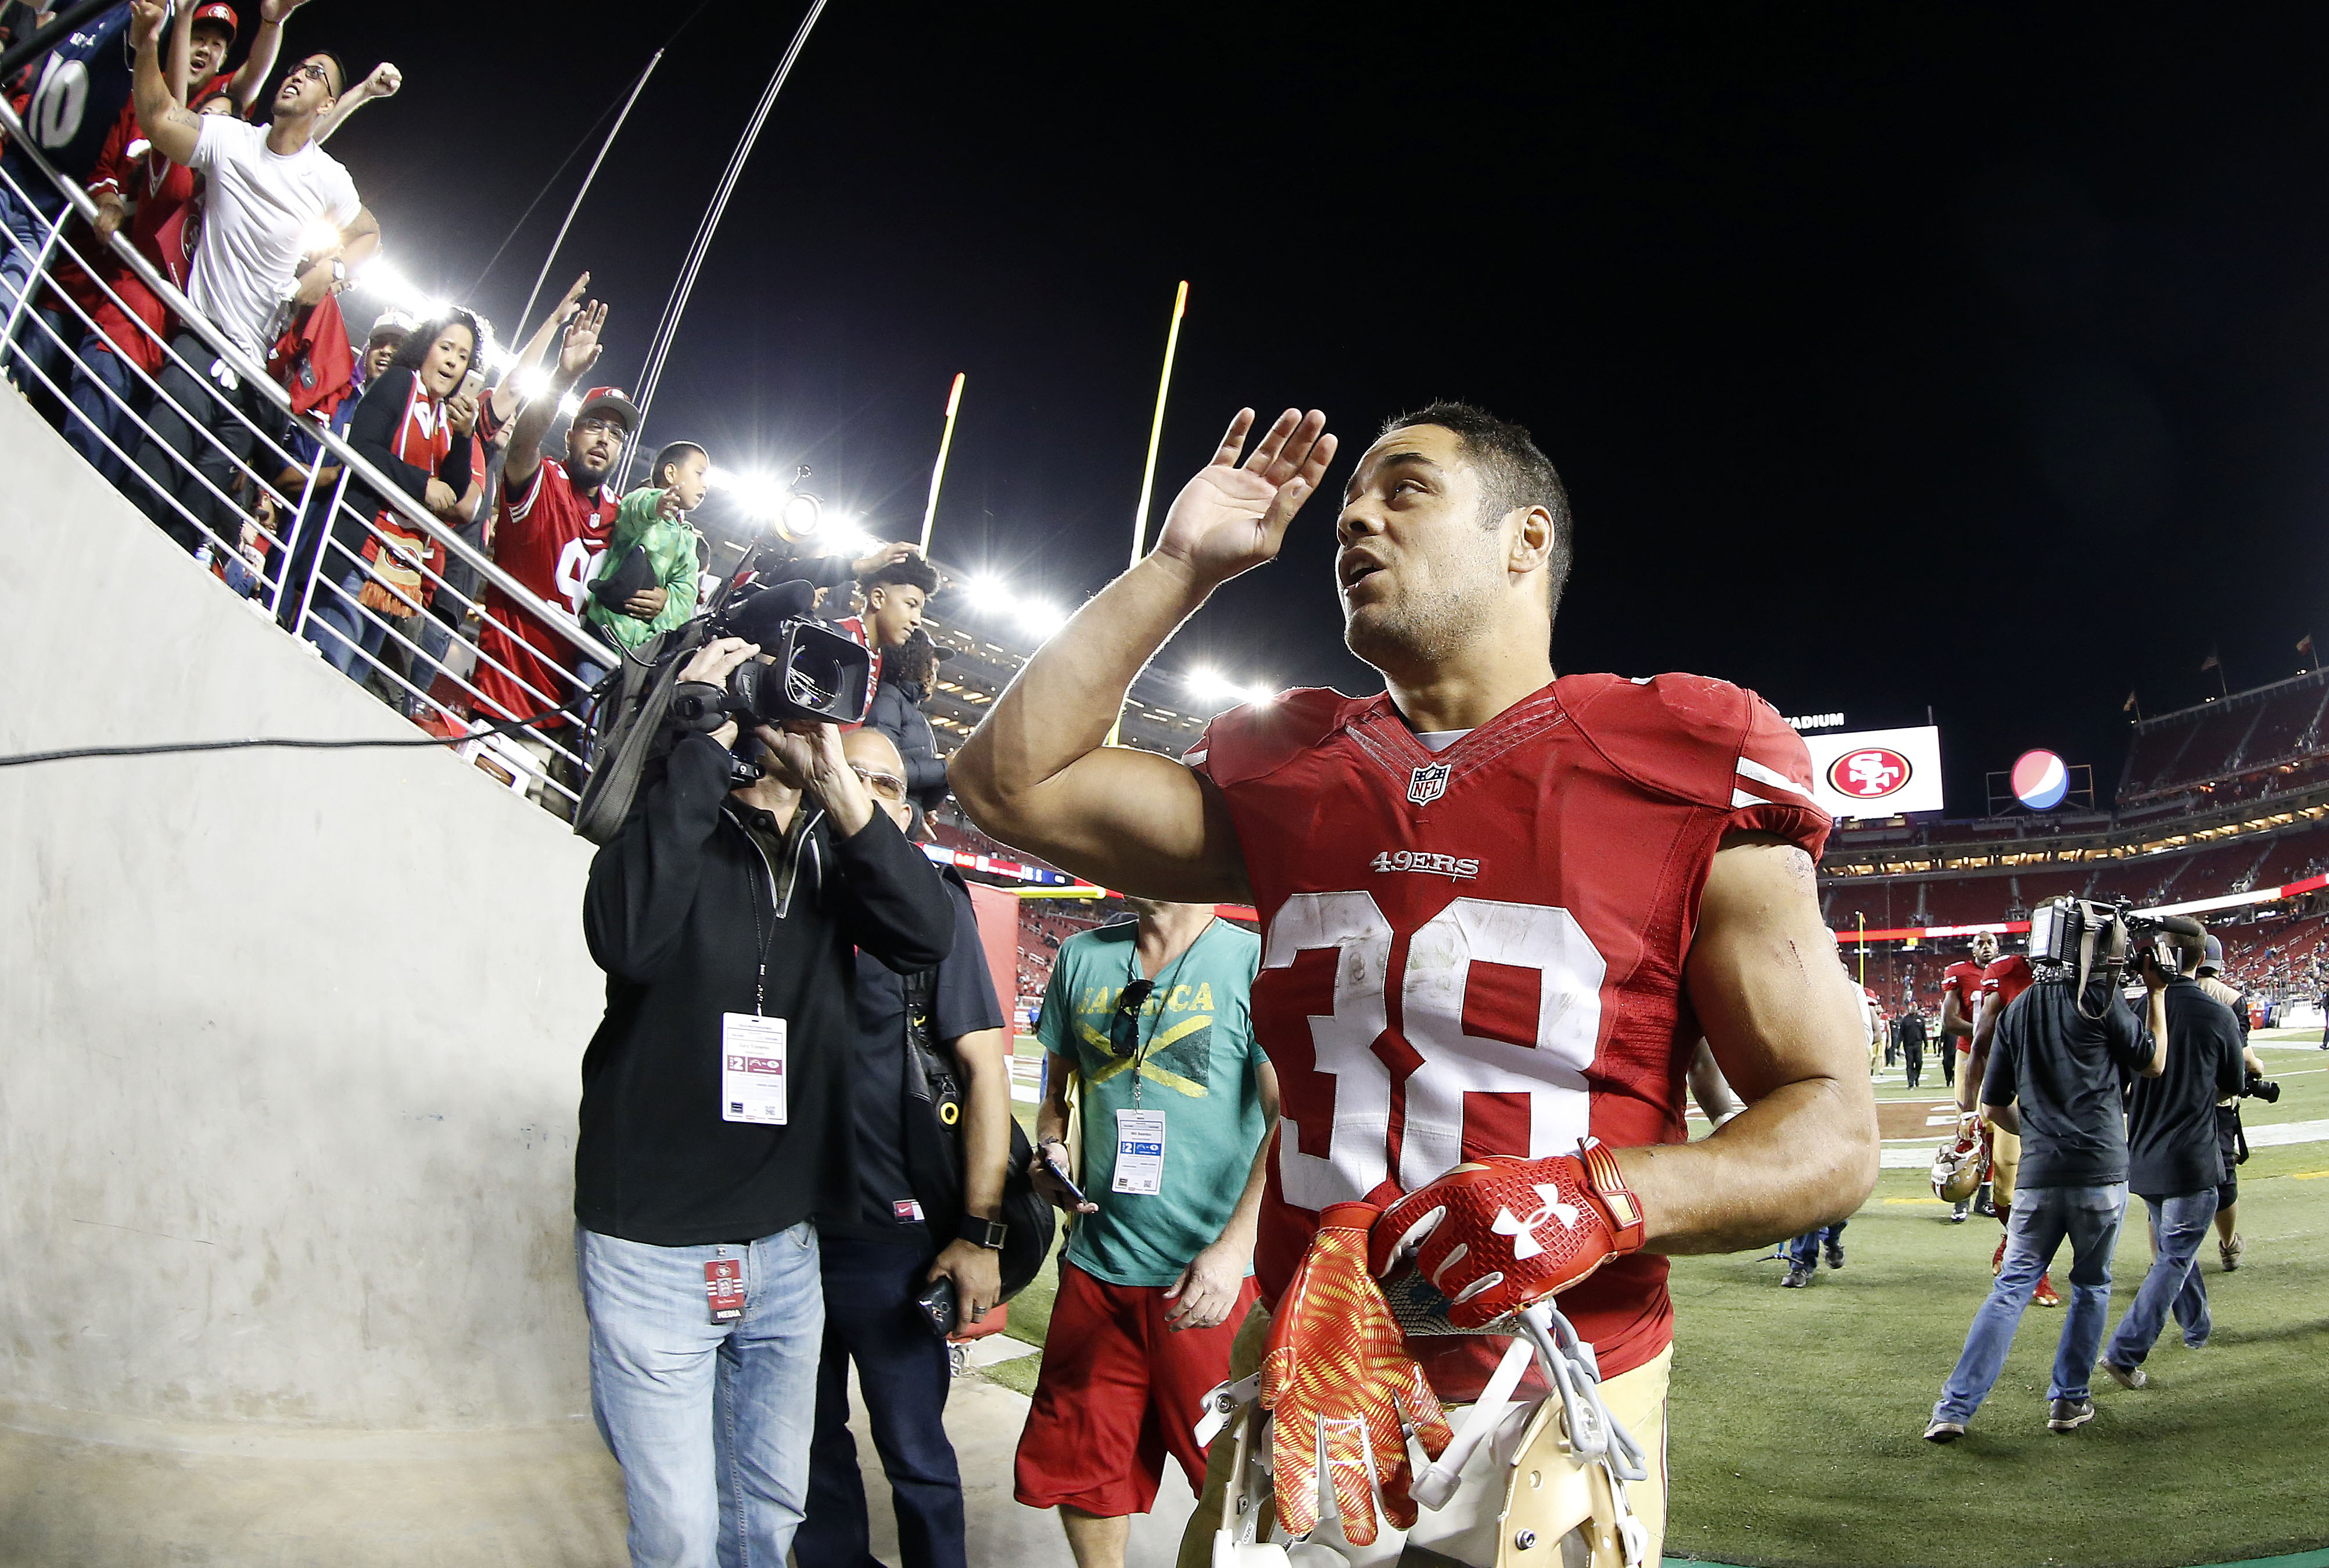 In this photo taken with a fisheye lens, San Francisco 49ers running back Jarryd Hayne (38) waves to fans after an NFL preseason football game against the San Diego Chargers in Santa Clara, Calif., Thursday, Sept. 3, 2015. The 49ers won 14-12. (AP Photo/T